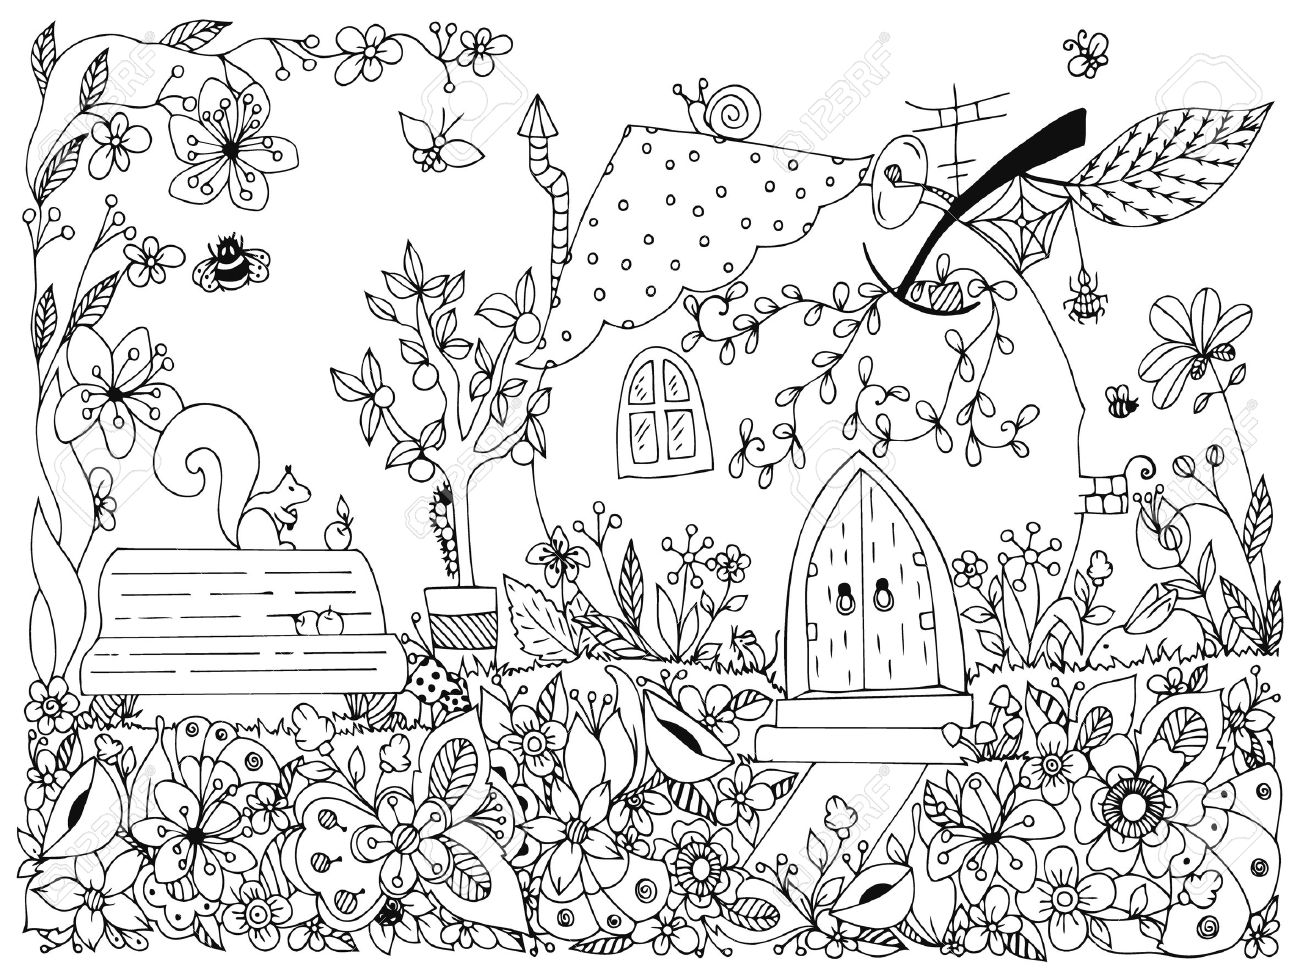 Illustration Park Garden A Bench A Tree With Apples Flowers